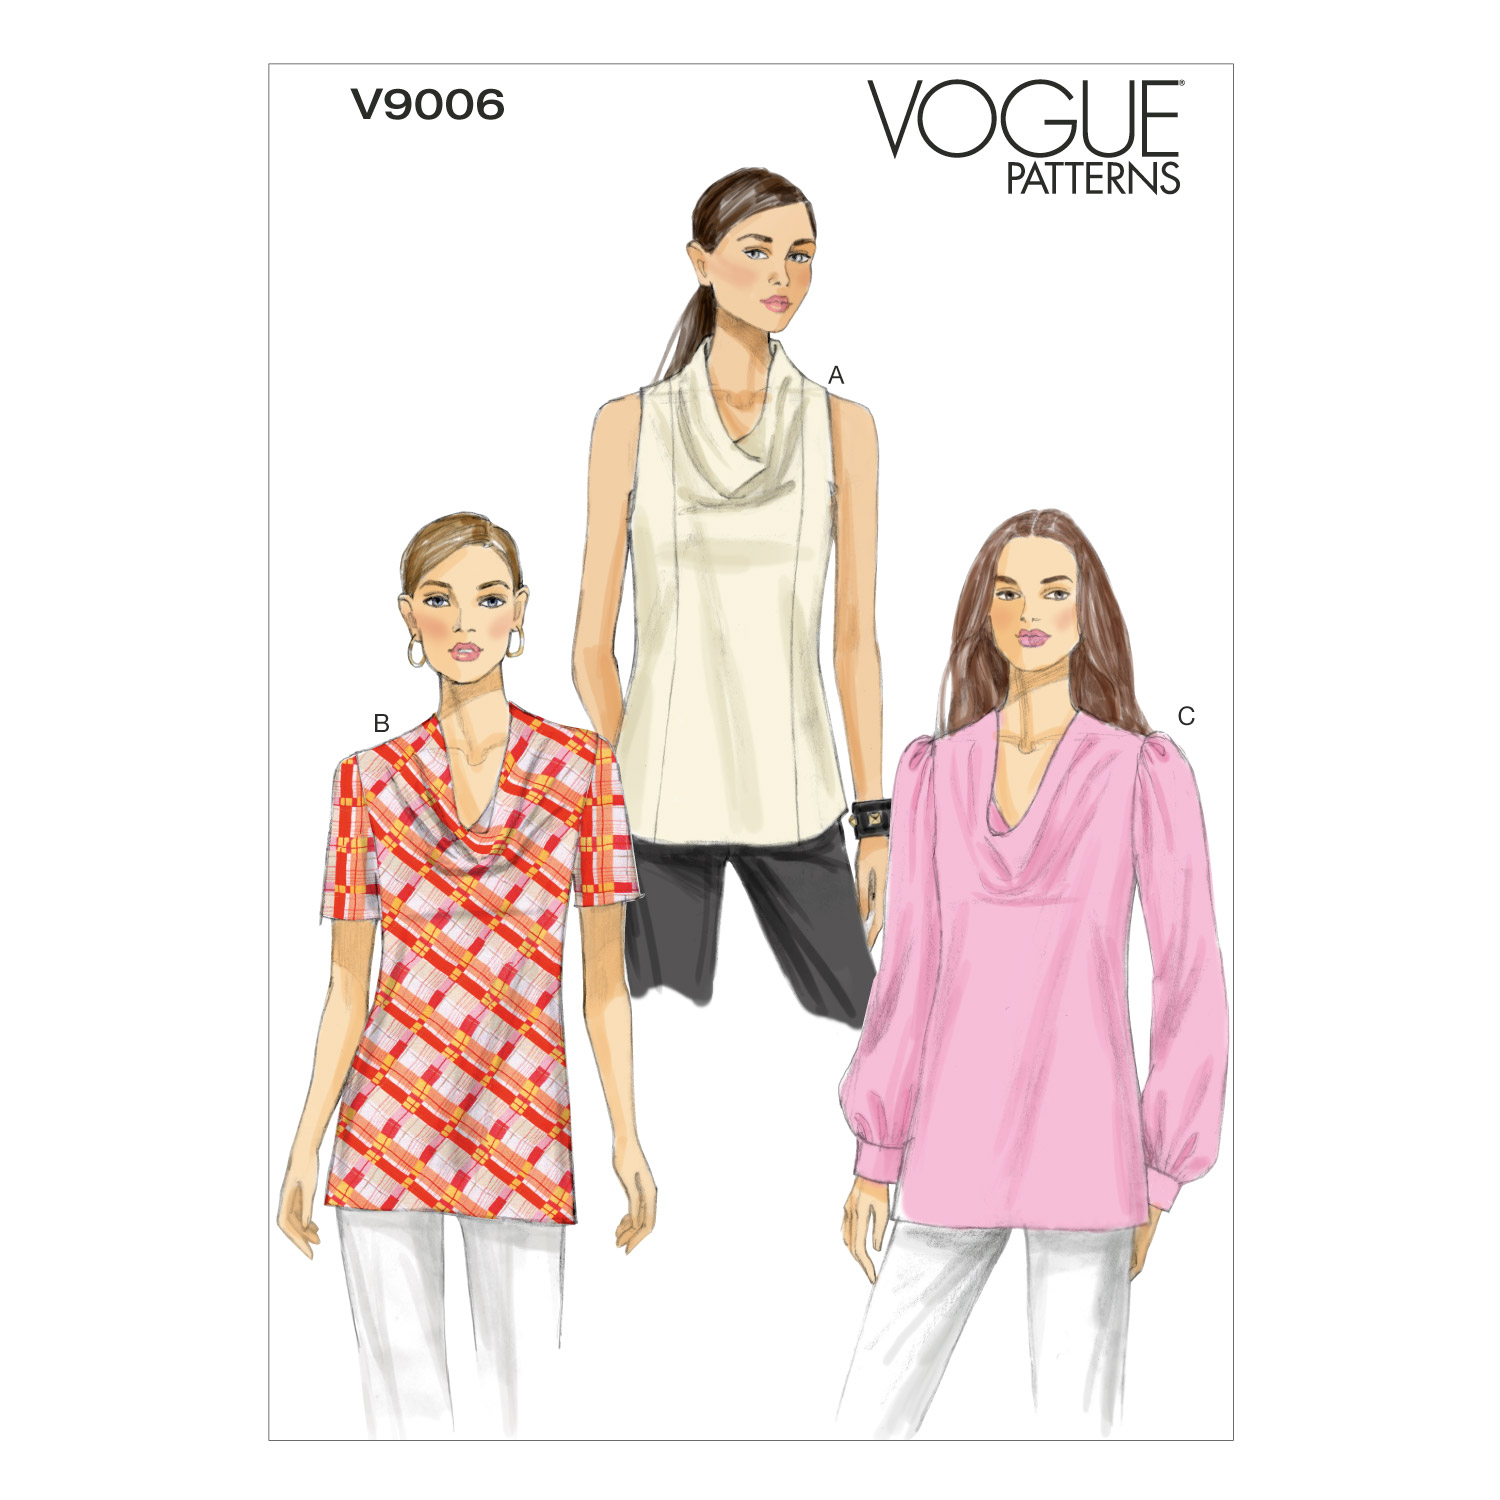 Vogue Patterns Misses Top-V9006